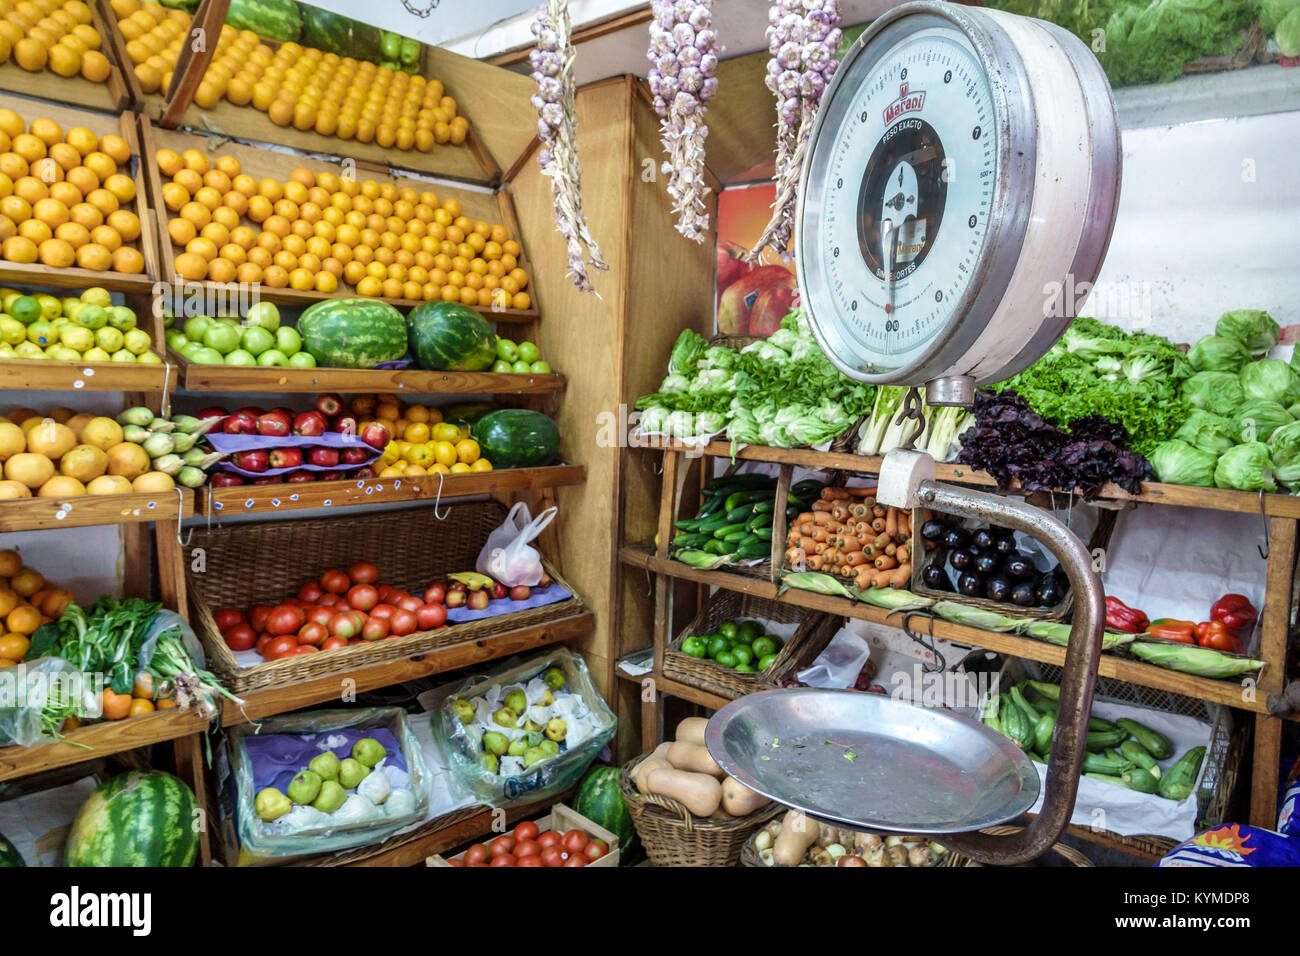 Buenos Aires Argentina Palermo market produce stand fruits scale oranges lettuce melon Hispanic Argentinean Argentinian - Stock Image